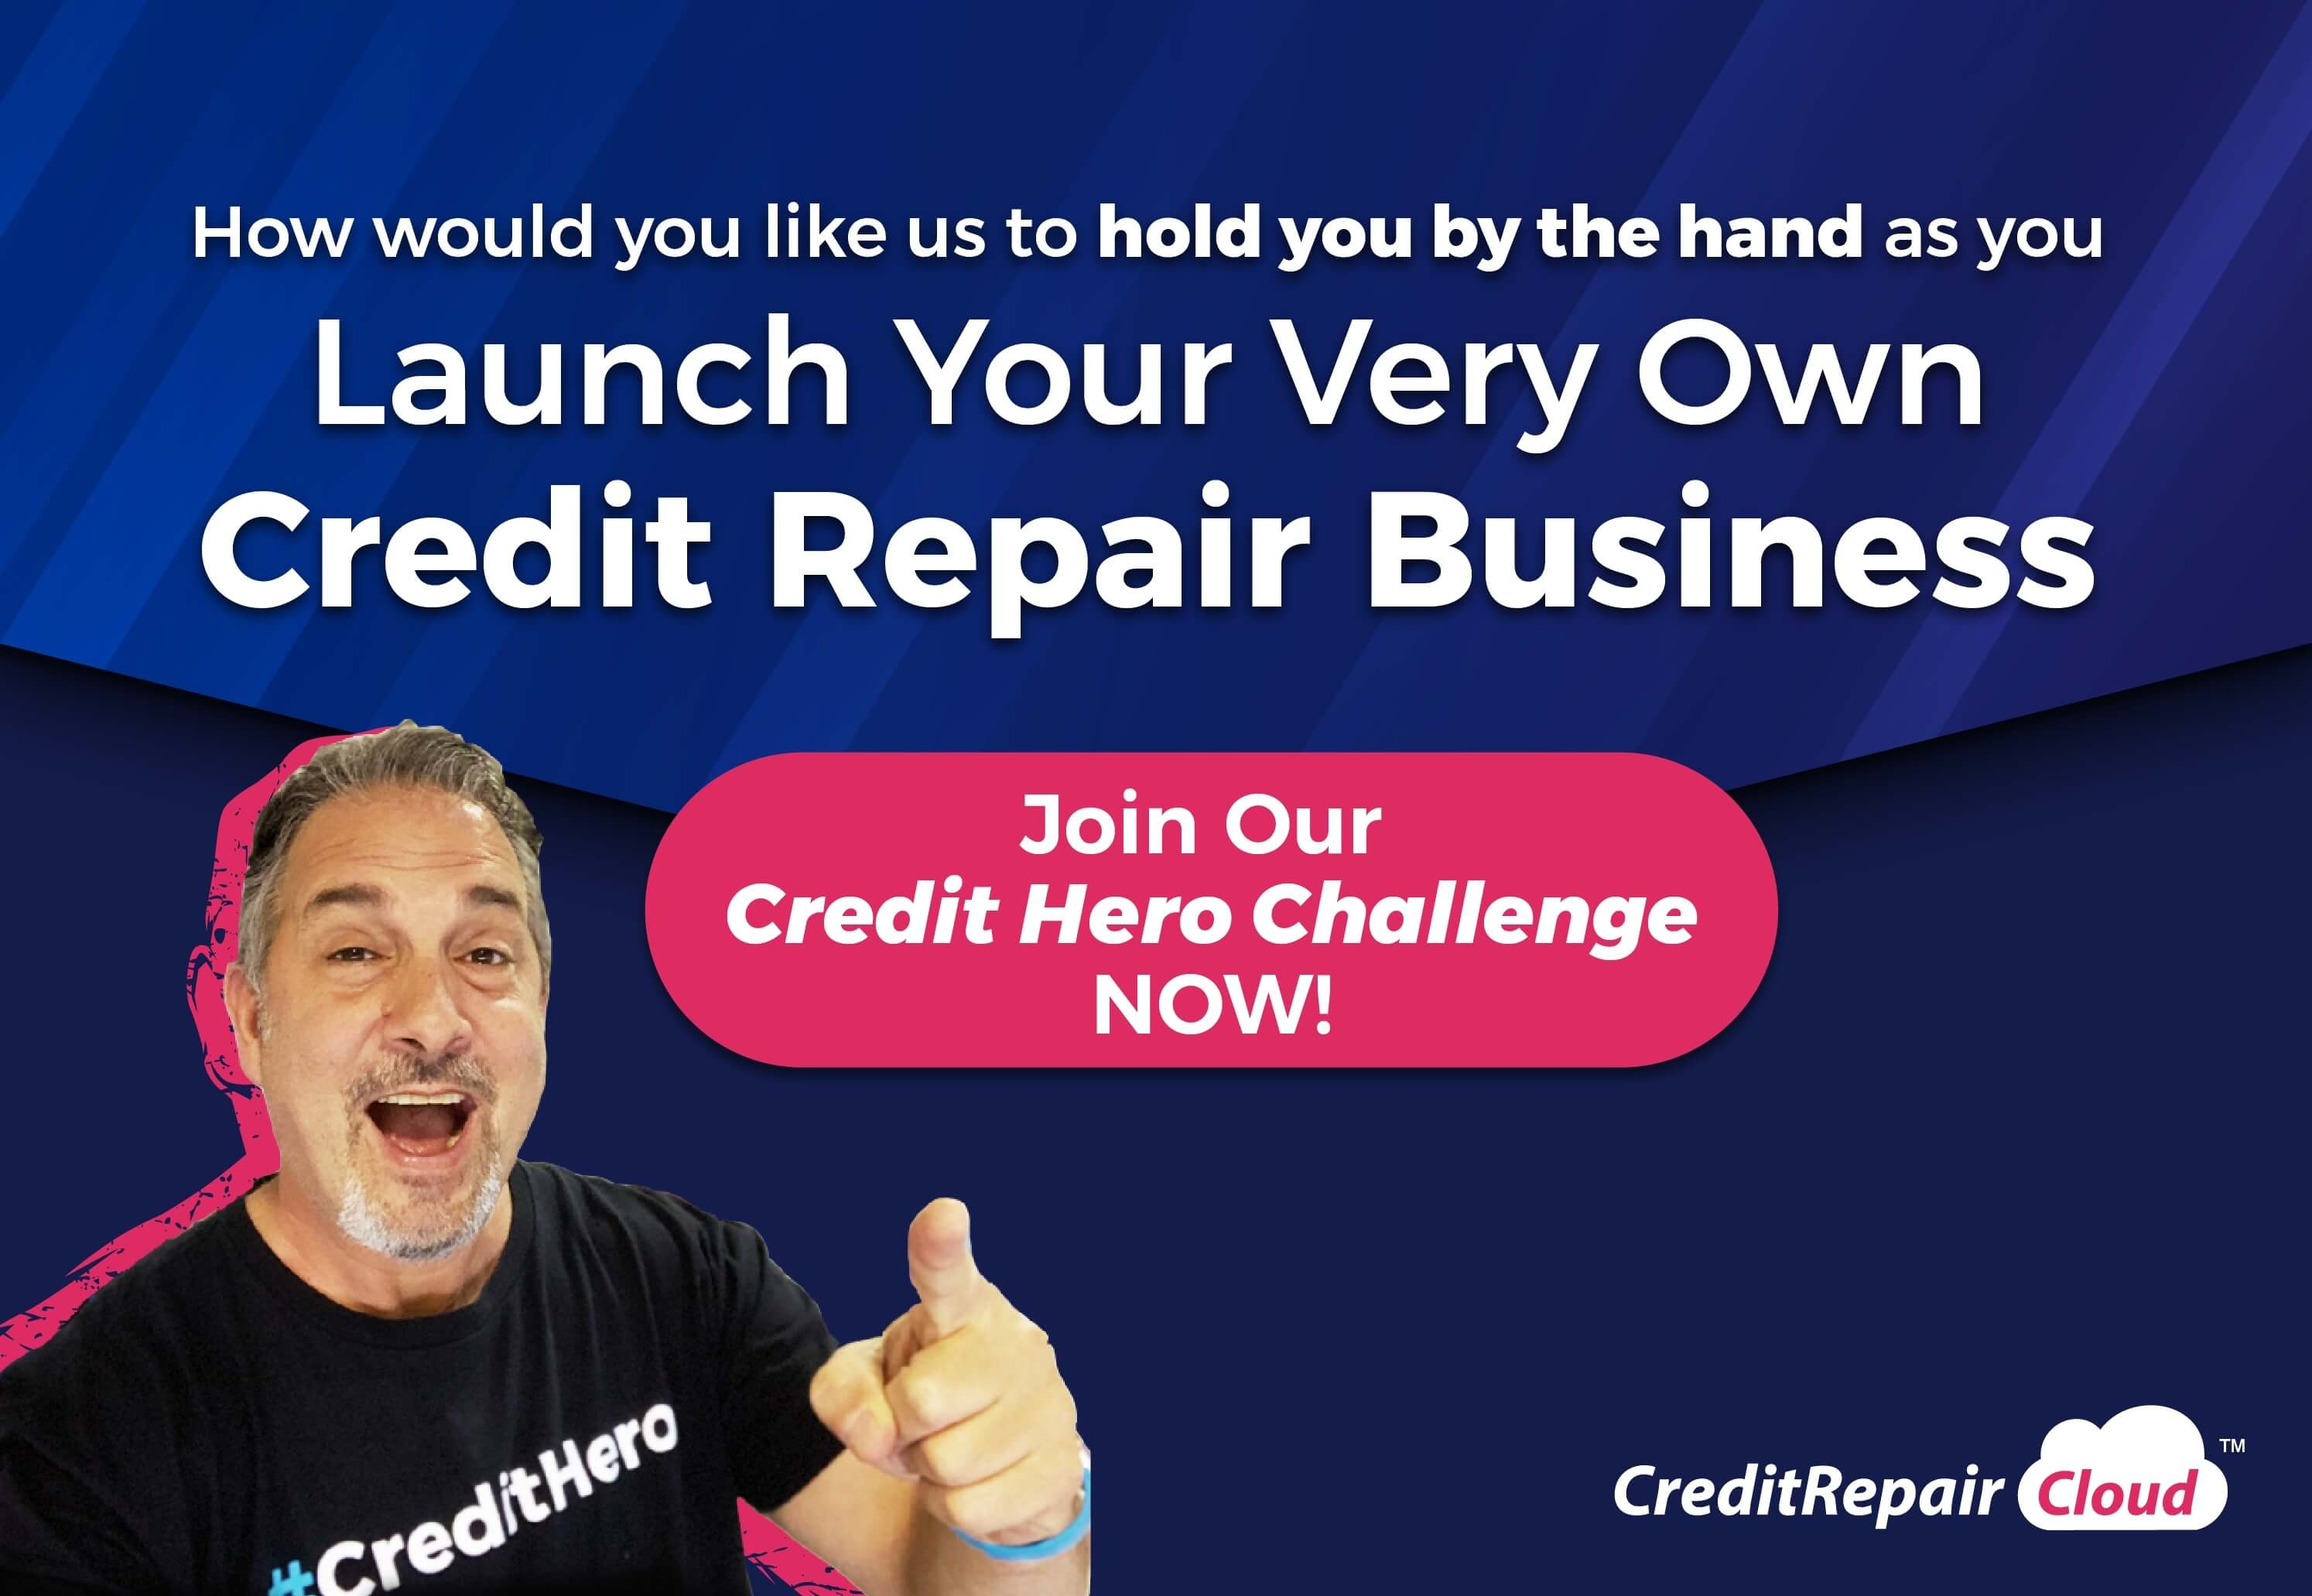 Launch your very own Credit Repair Business